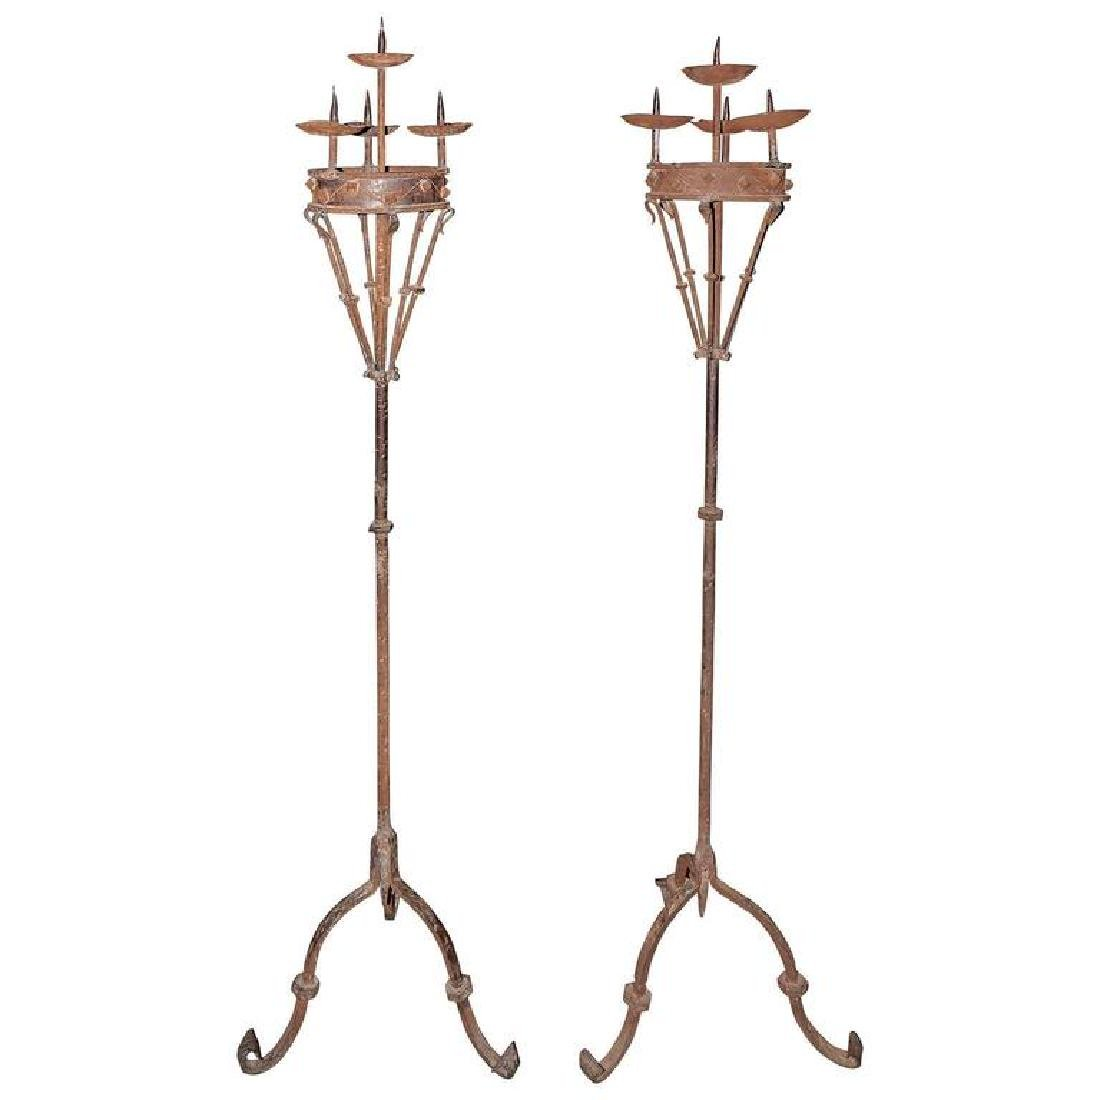 Pair of Early 19th Century Spanish Forged Iron Candleho